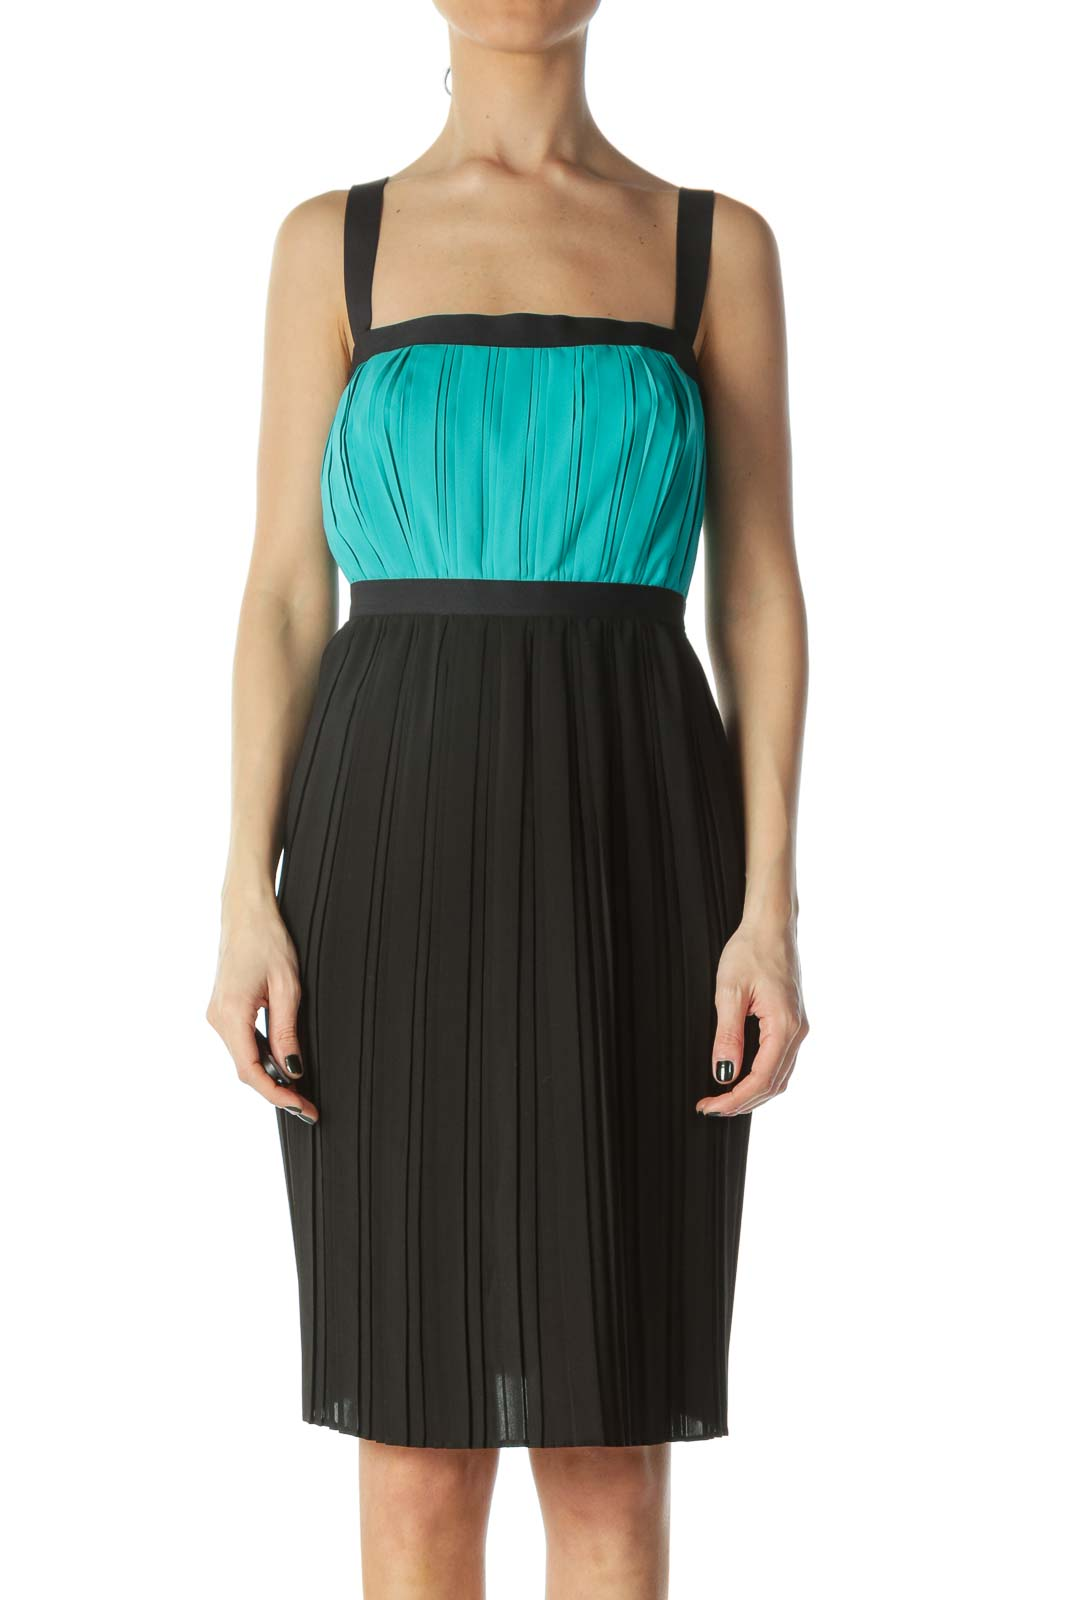 Teal and Black Color Block Dress